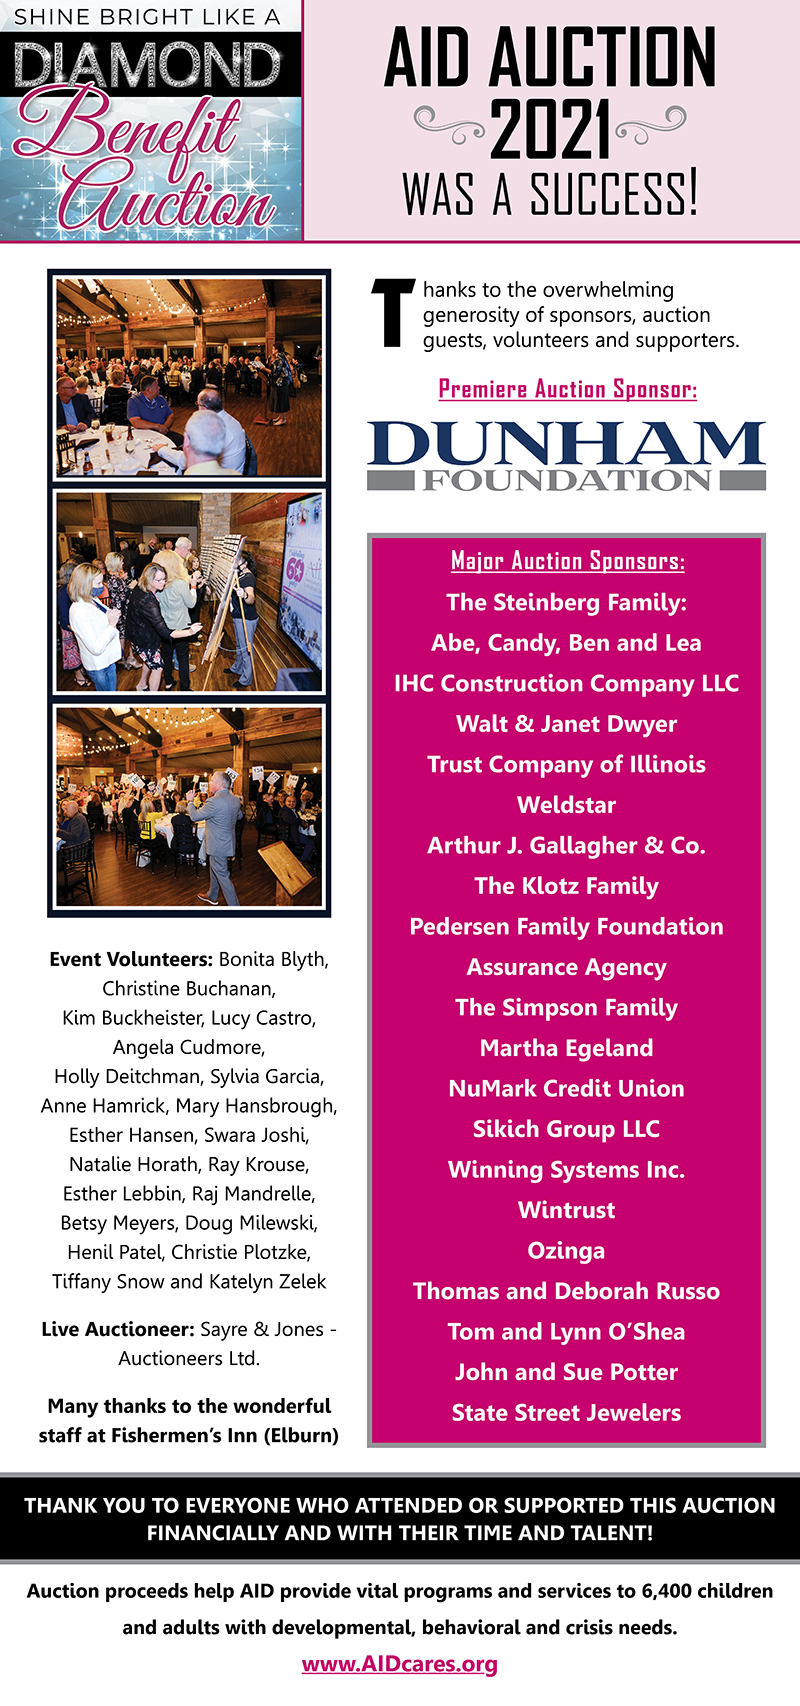 Thank You for a Successful Benefit Auction